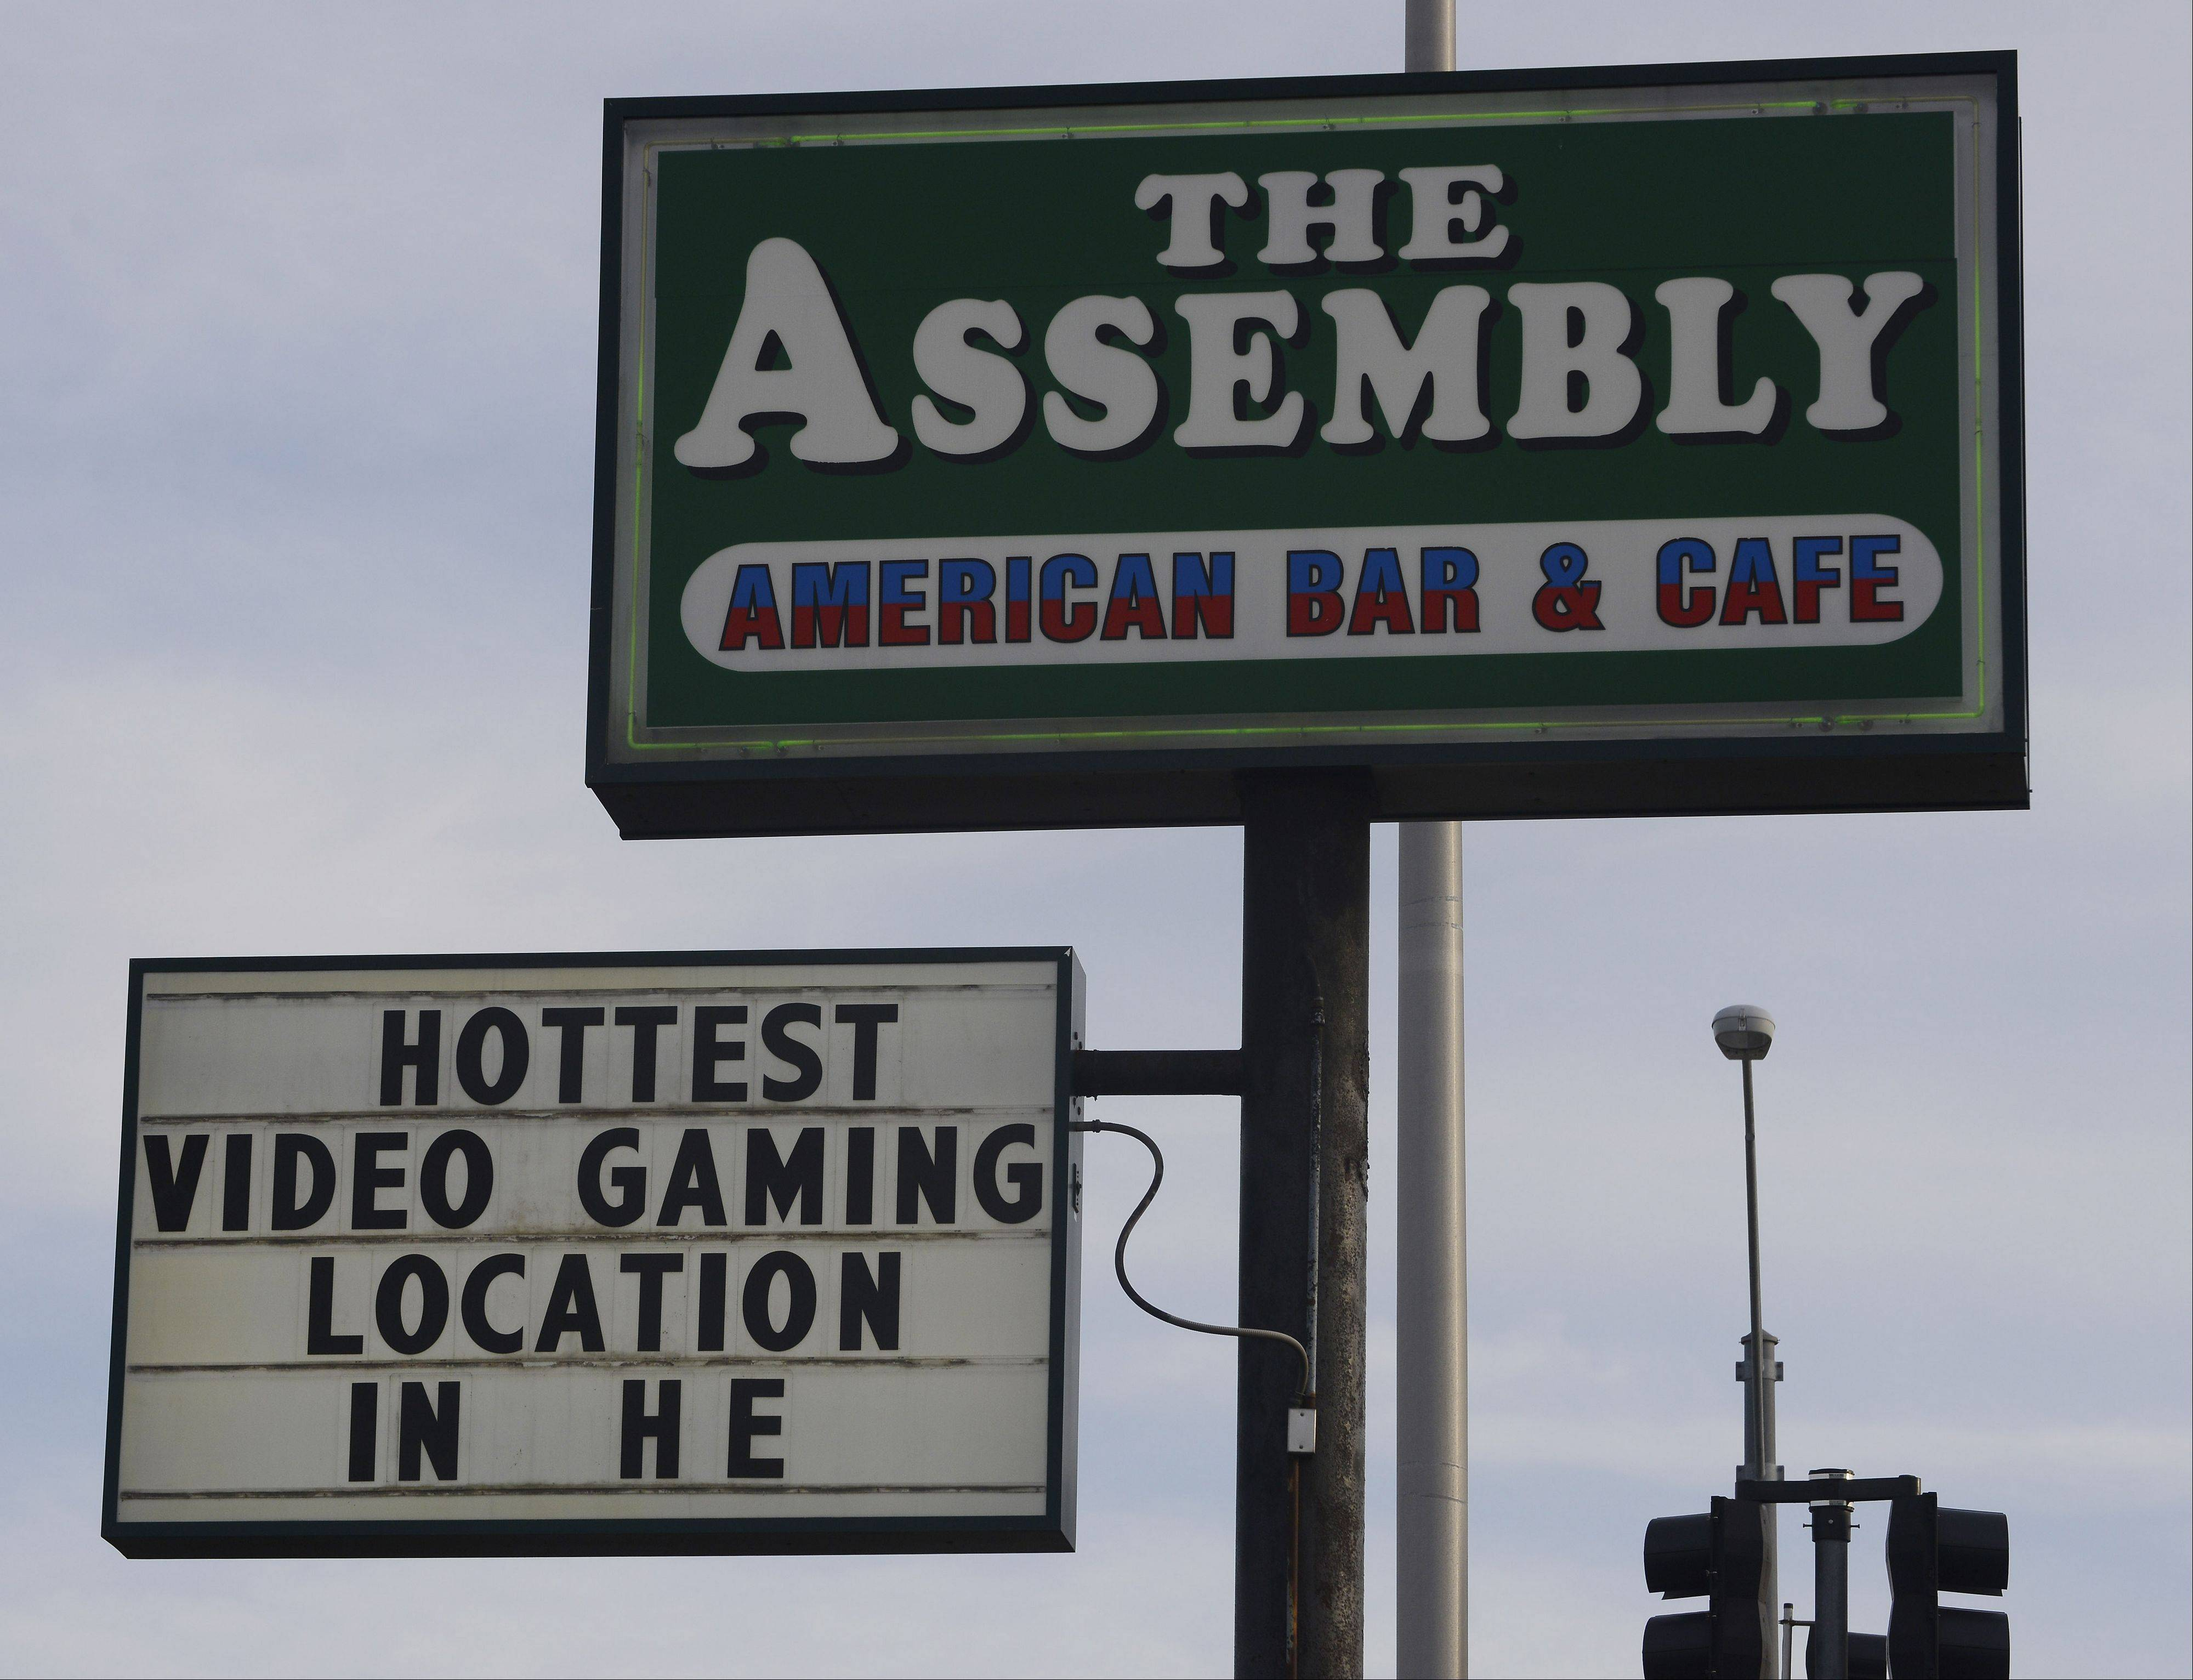 There's sometimes a line to play popular video gambling machines at The Assembly American Bar and Caf� in Hoffman Estates.